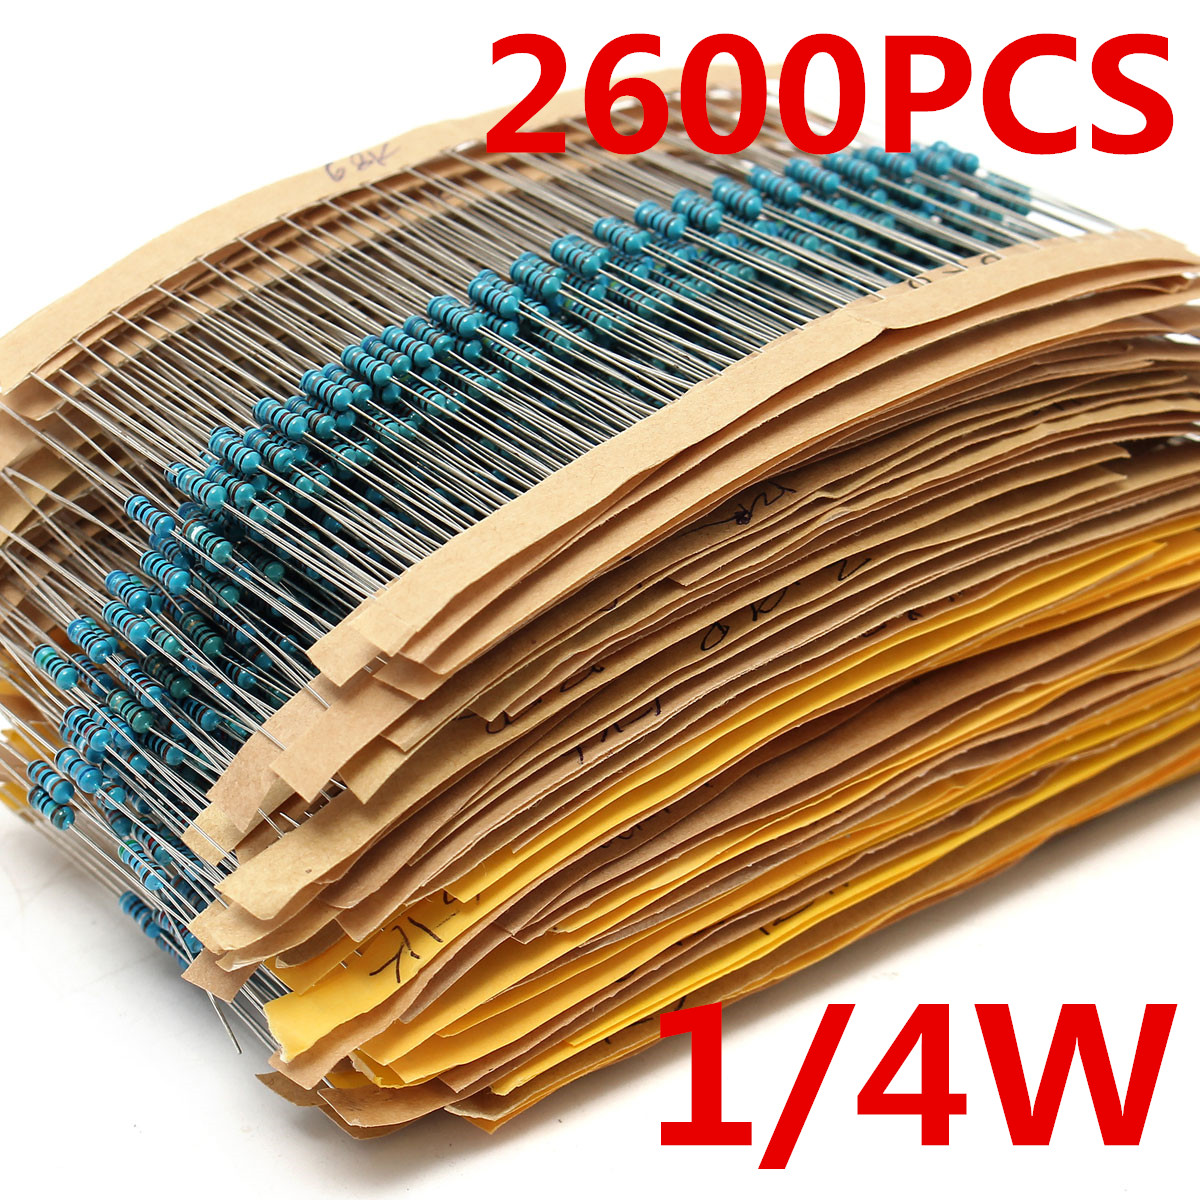 Resistors Assorted Values Fixed-Capacitors Metal-Film 1/4w Lot 1-% 2600pcs 130 Pack-Kit-Set